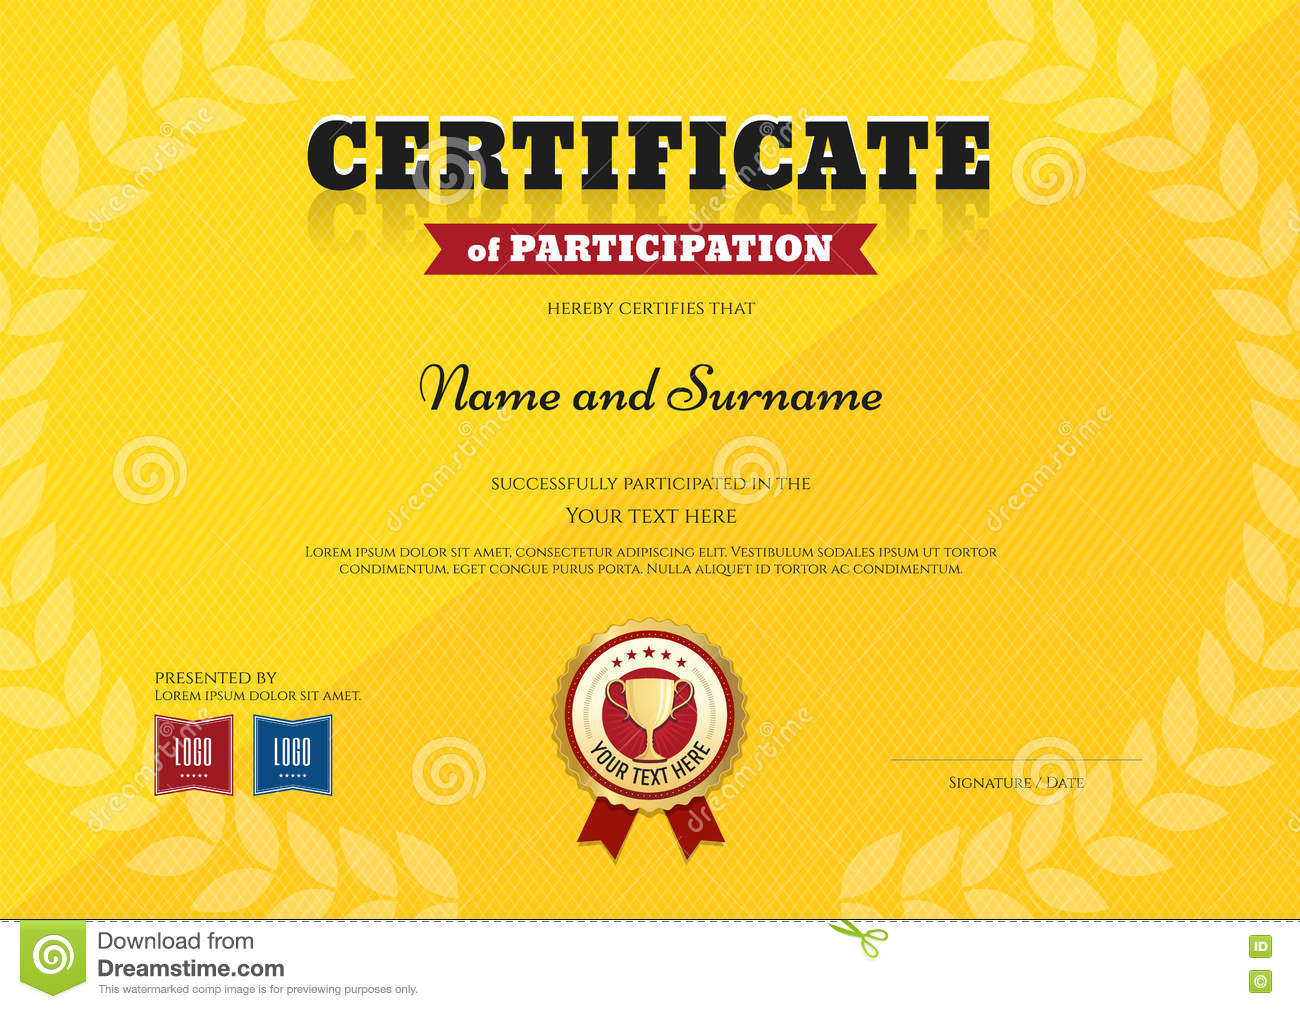 Certificate Of Participation Template In Silver Border – Certificate of Participation Template